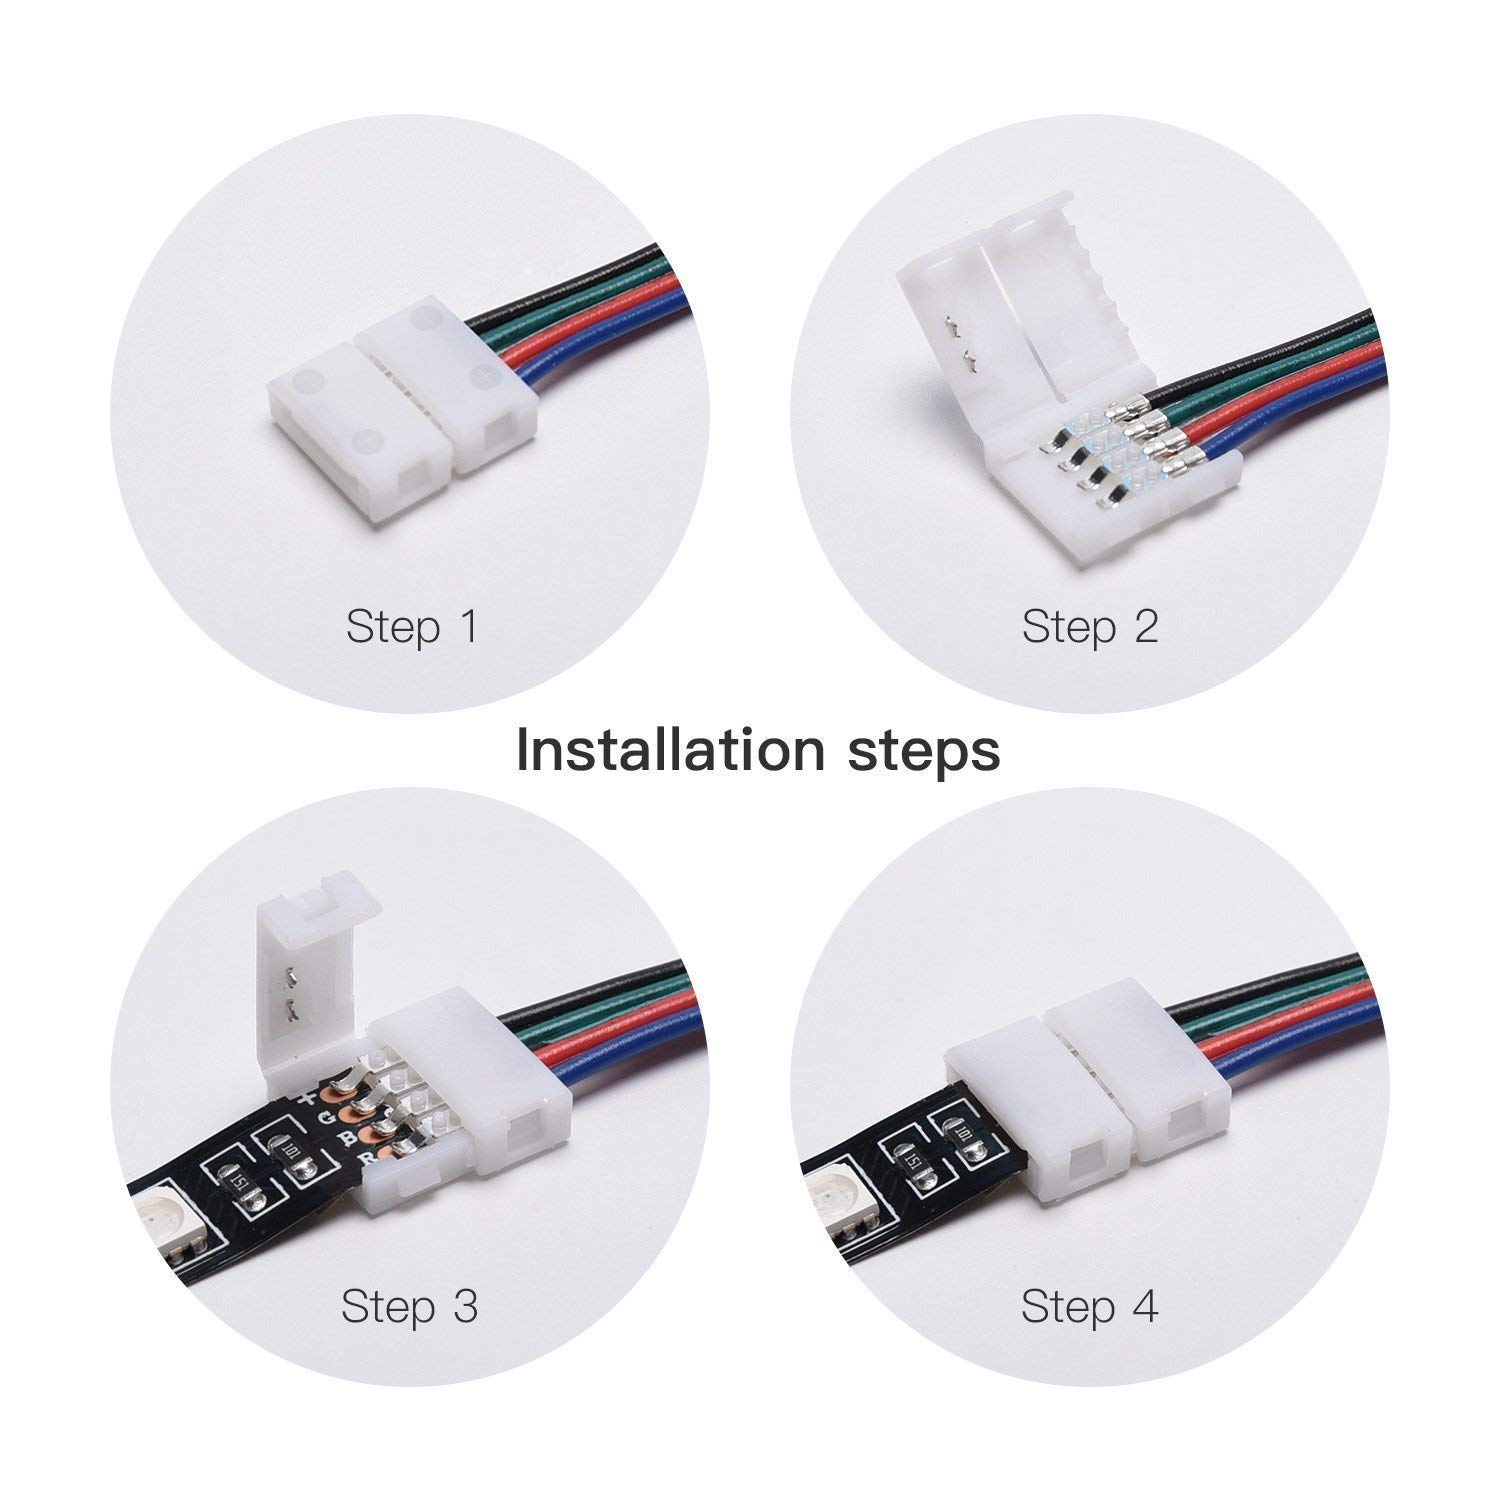 LETOUR 5050 RGB LED Light Strip Connector Kit with 4 Pins 10 mm Wide Strip to Strip Jumper-4Pack ShuoFeng LT-Connect